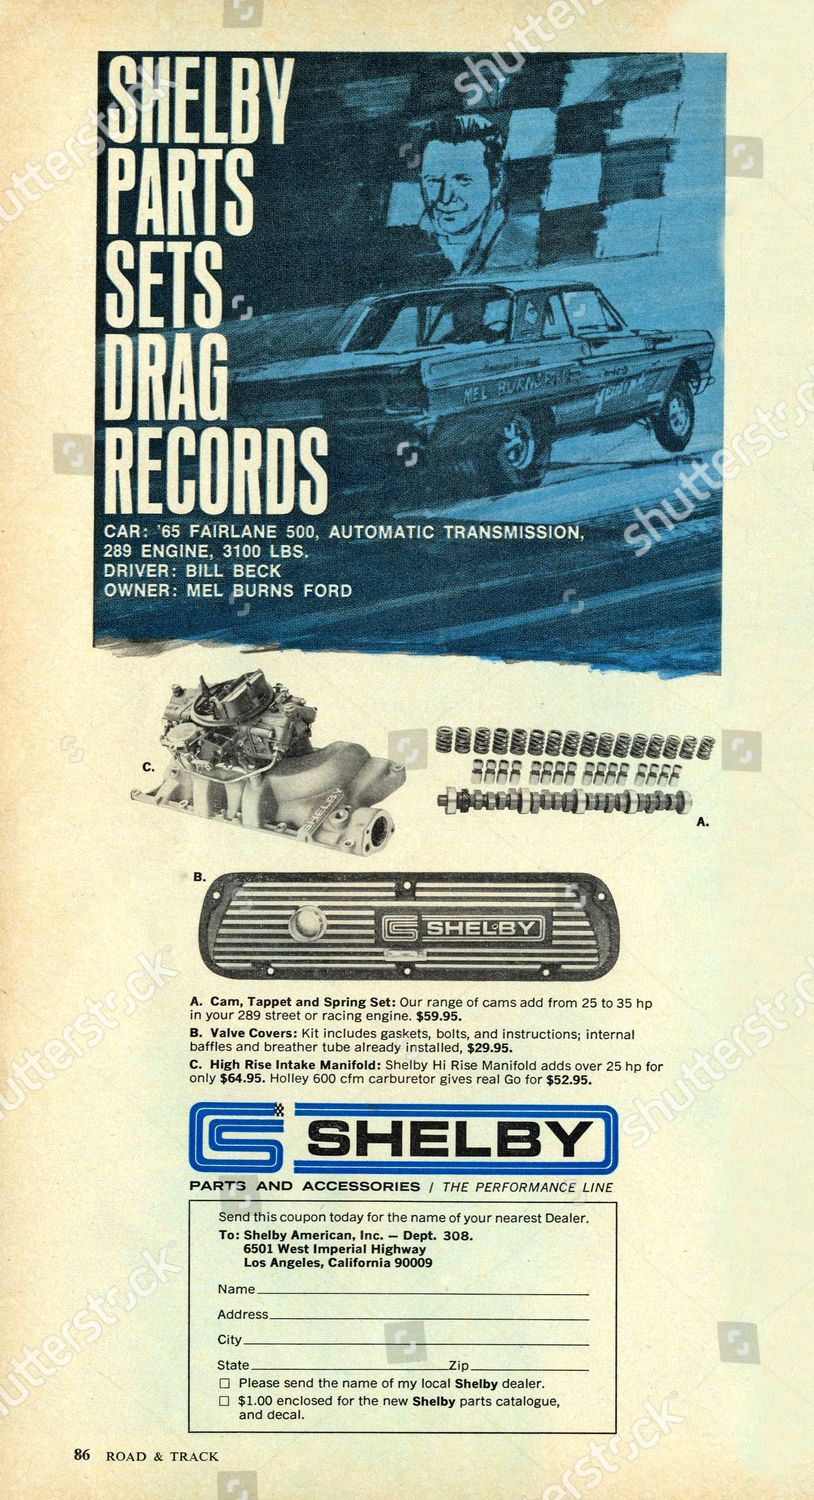 1965 Ford Fairlane Shelby Parts Accessories Editorial Stock